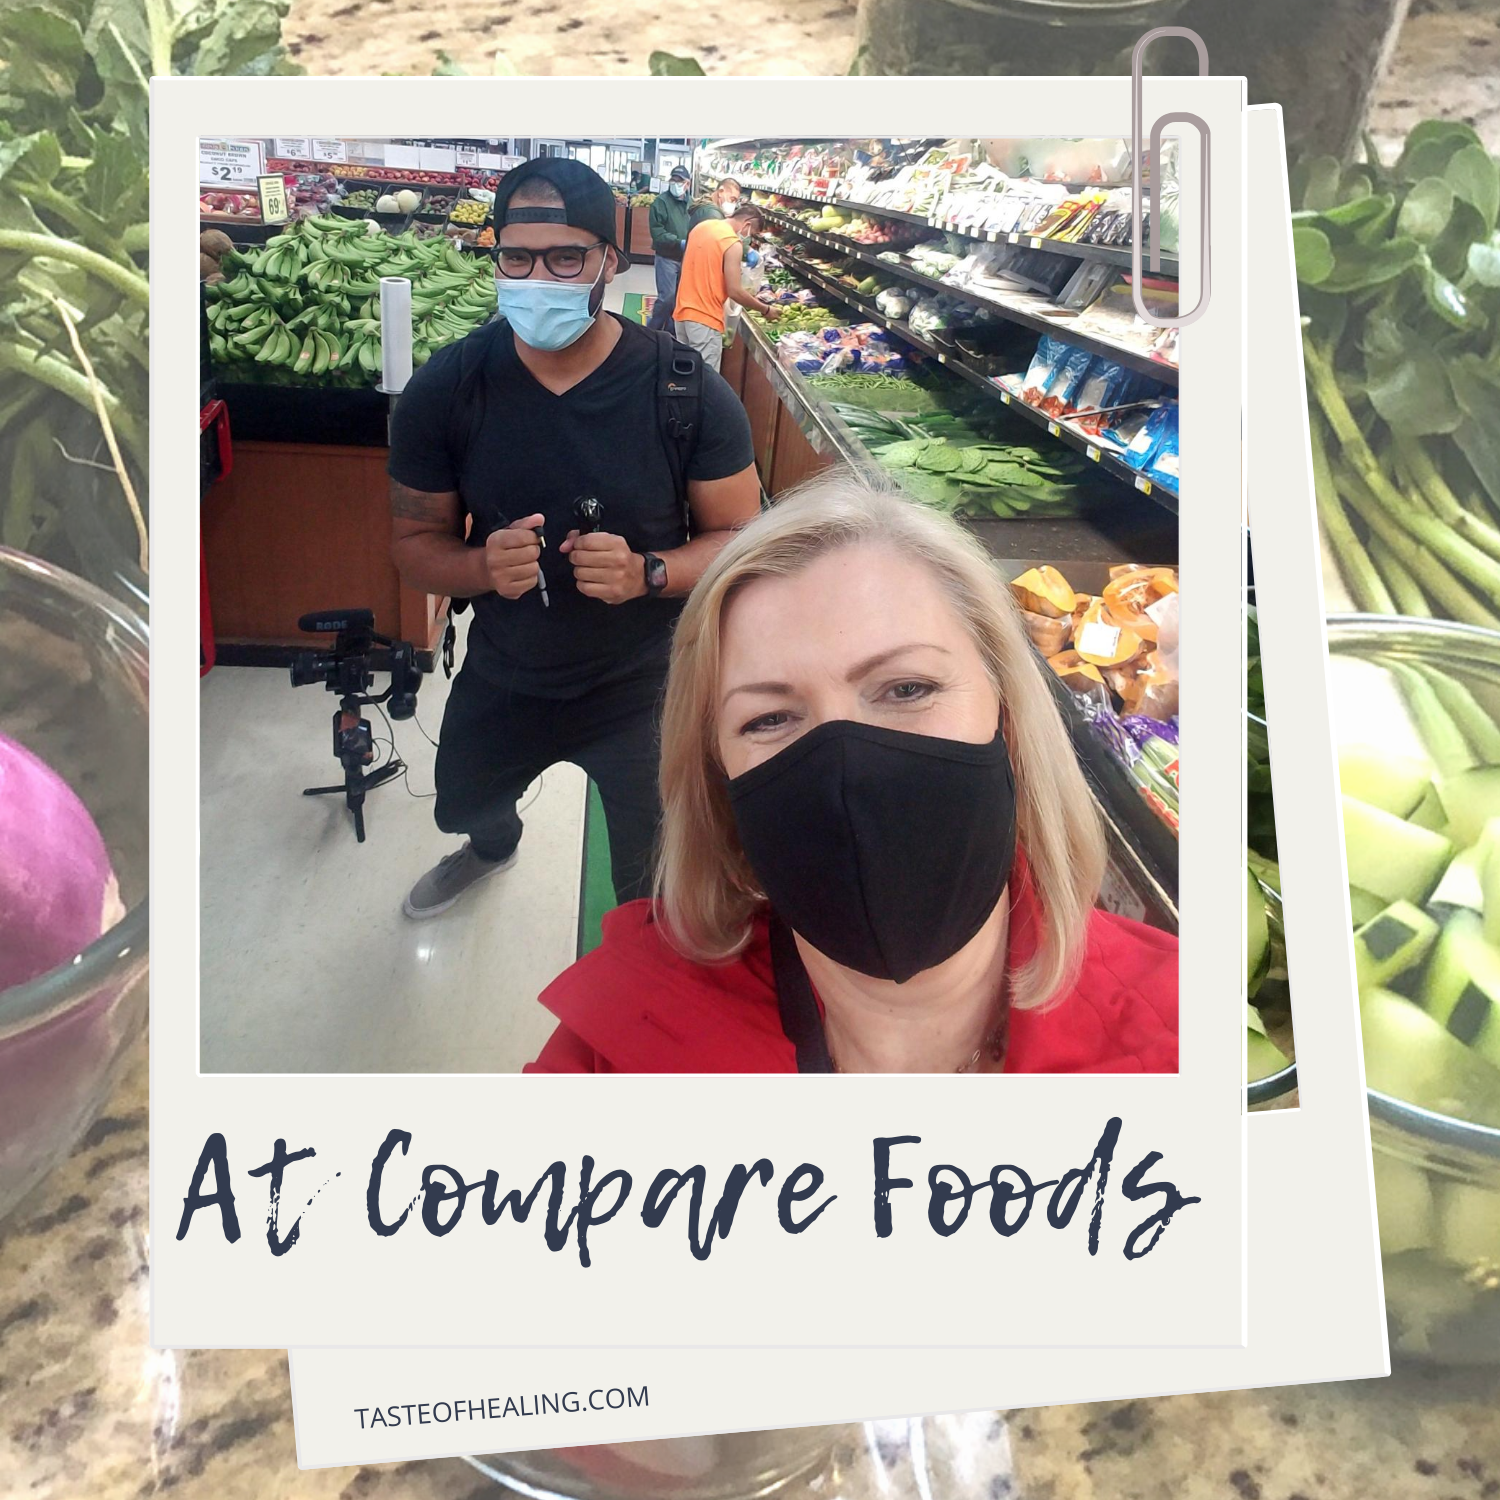 Carol shopping at Compare Foods in Charlotte NC